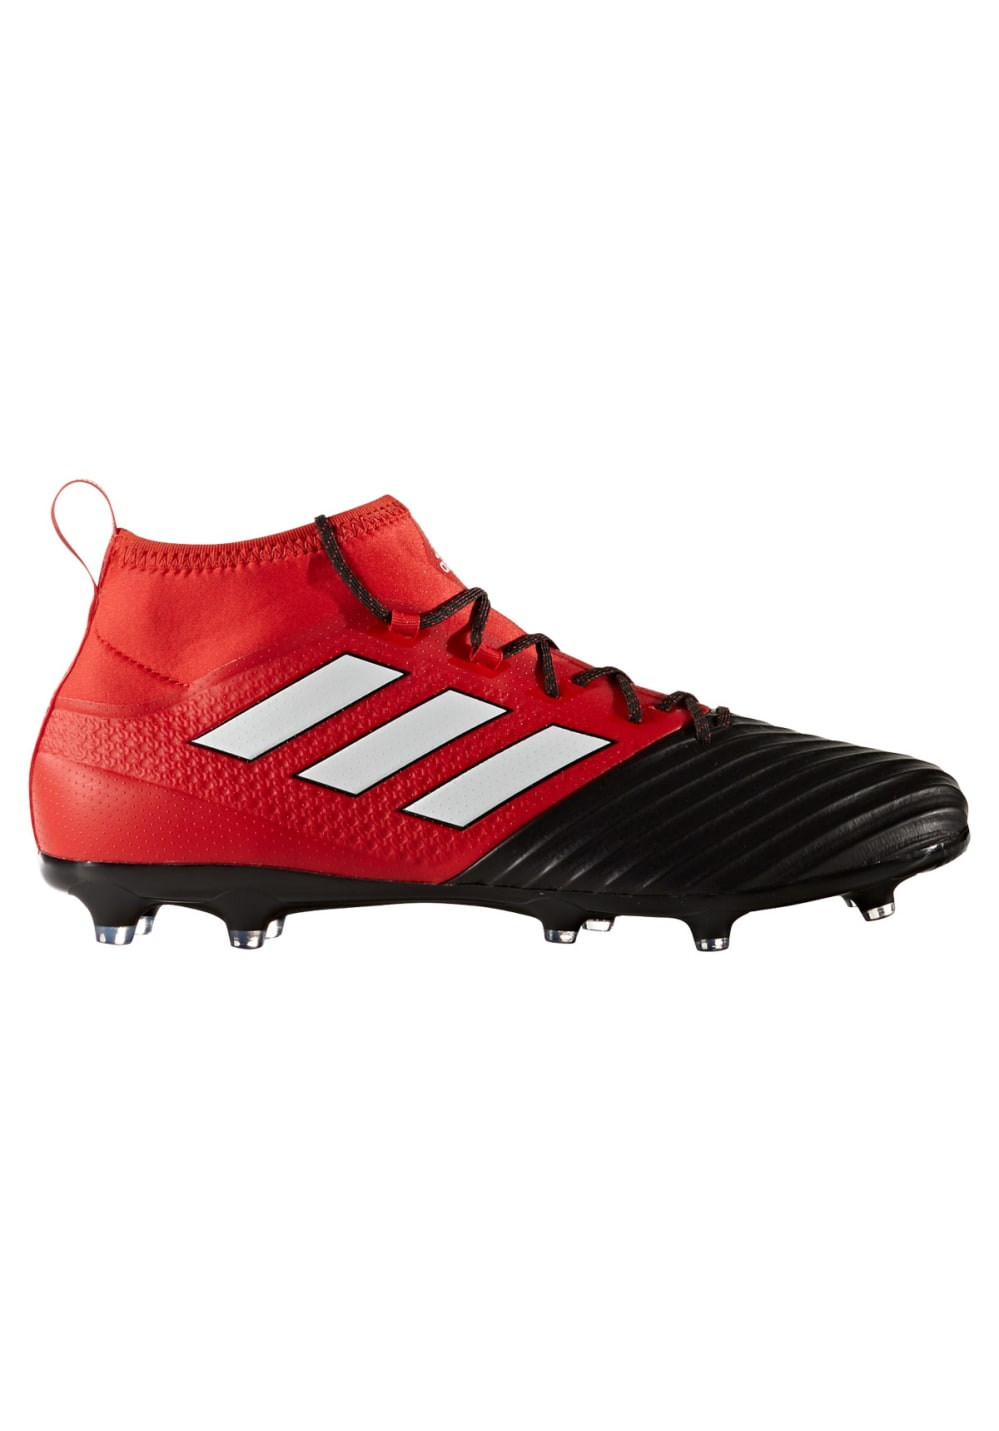 the latest 896b0 e6494 Next. -60%. adidas. ACE 17.2 Primemesh FG ...